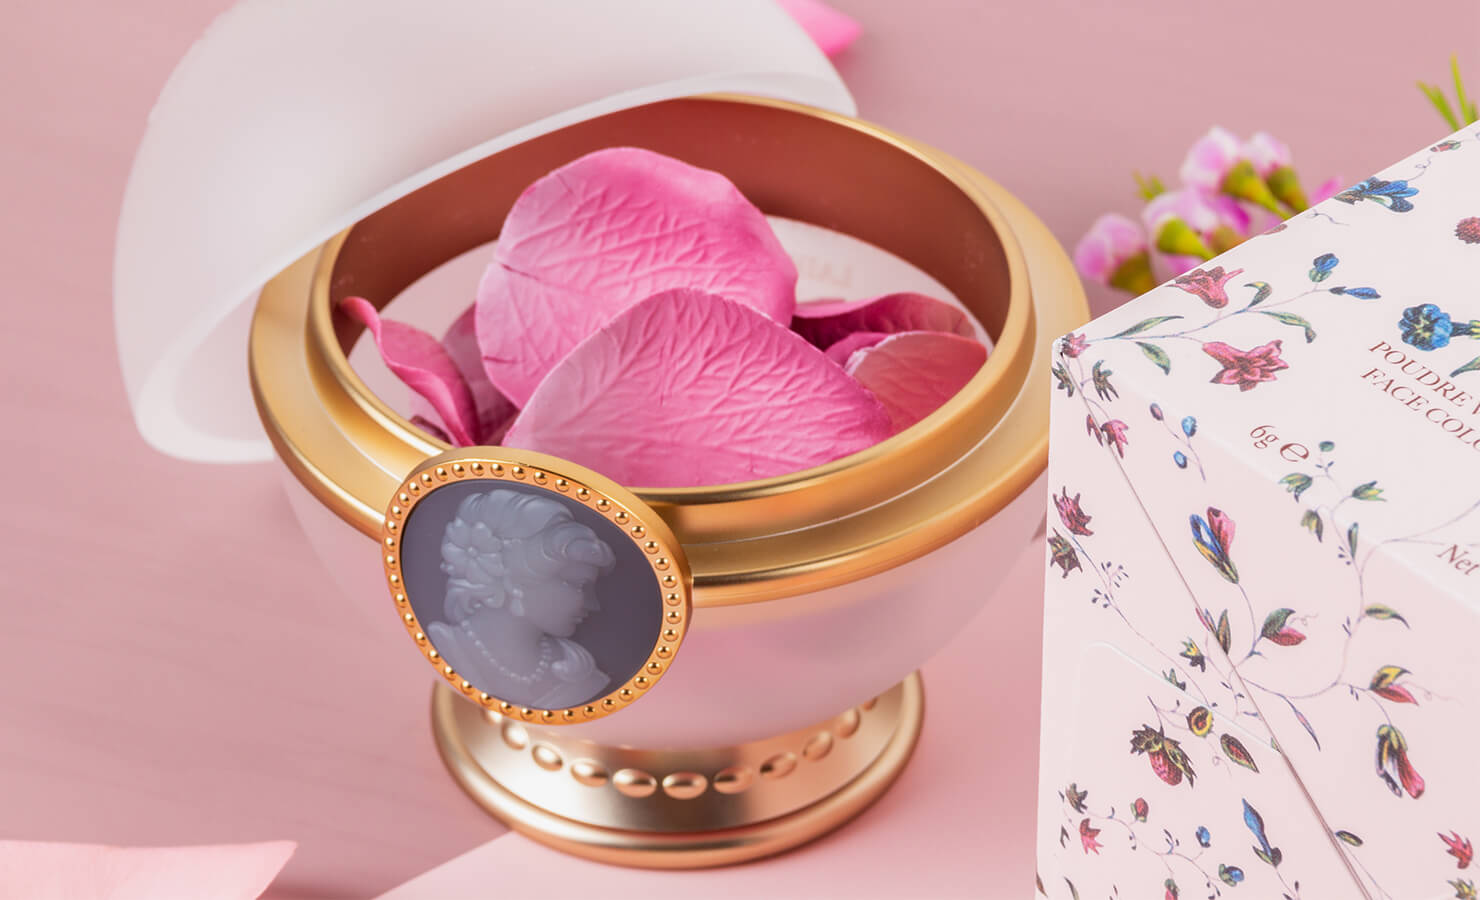 07-the-ultimate-list-of-christmas-gifts-in-malaysia-face-color-rose-laduree